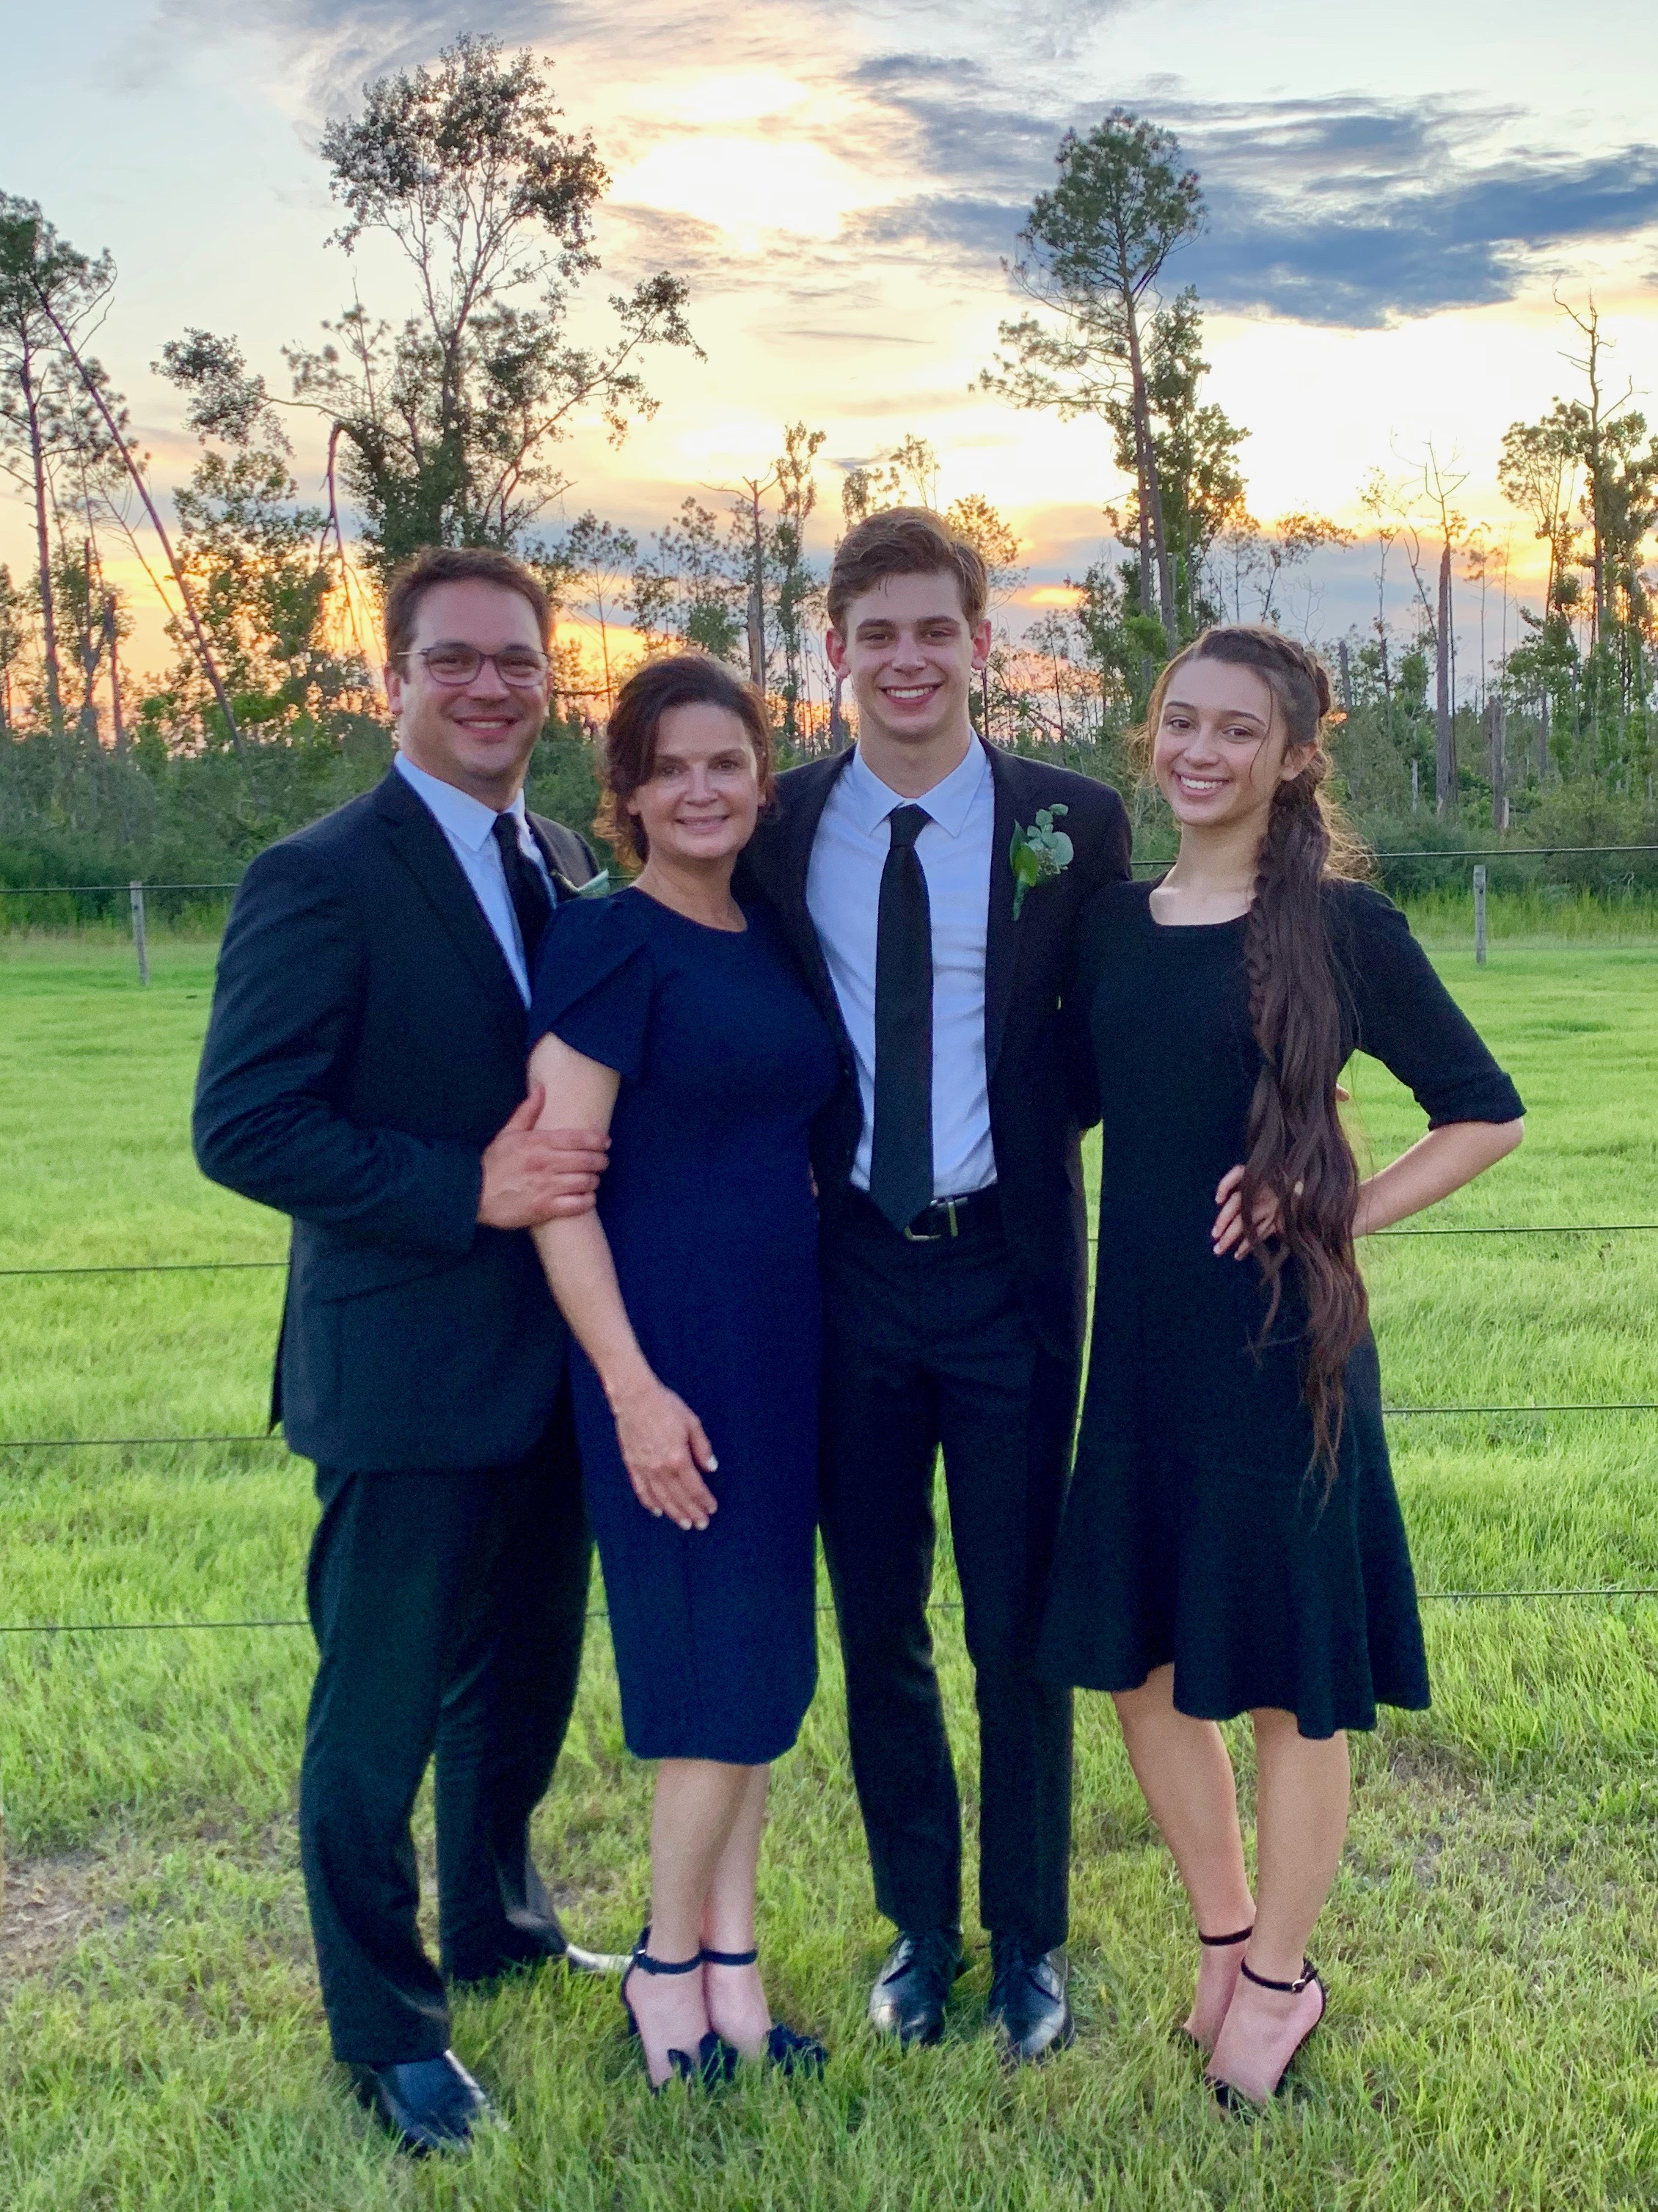 - Pastor Brent Keating and his wife Cyndi came to Livingway in the spring of 2019 from Asheville, NC. While both of them have roots in Texas, they have found their home with us in Southwest Louisiana. We are thankful to have such gifted leaders and teachers leading our church into this new season at Livingway!